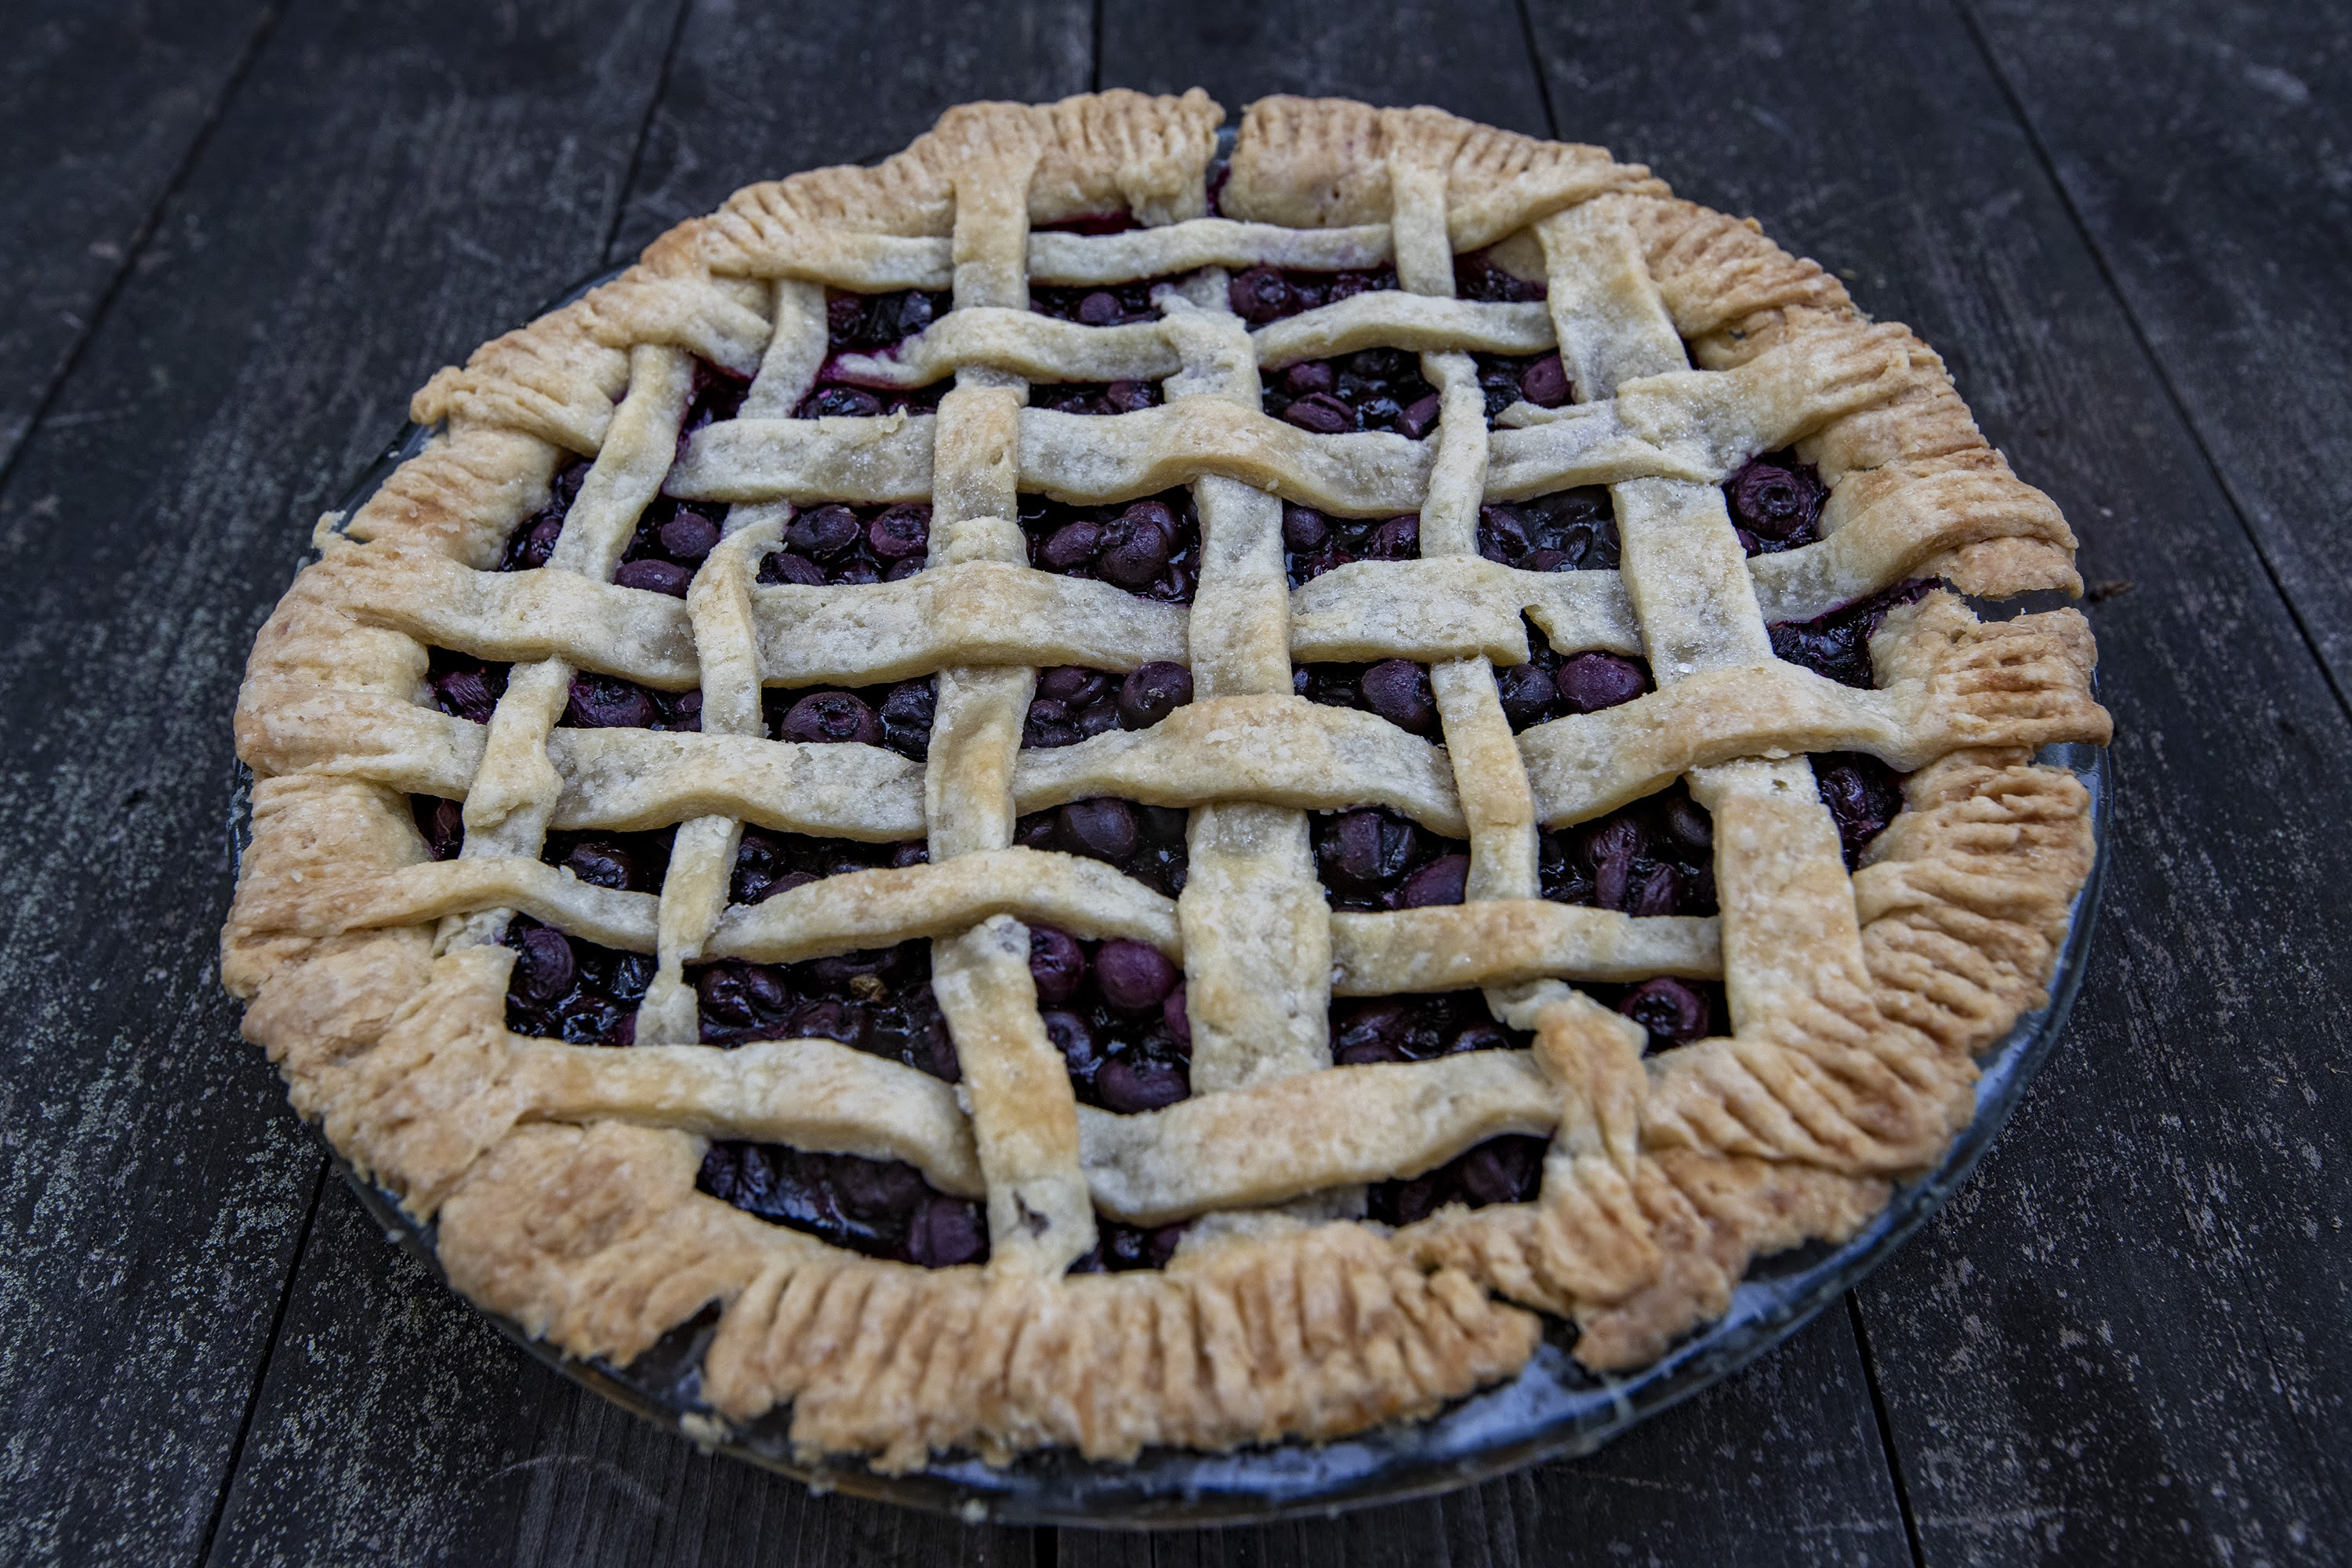 A blueberry pie made with blueberries from Honey Pot Hill Orchards in Stow. (Jesse Costa/WBUR)